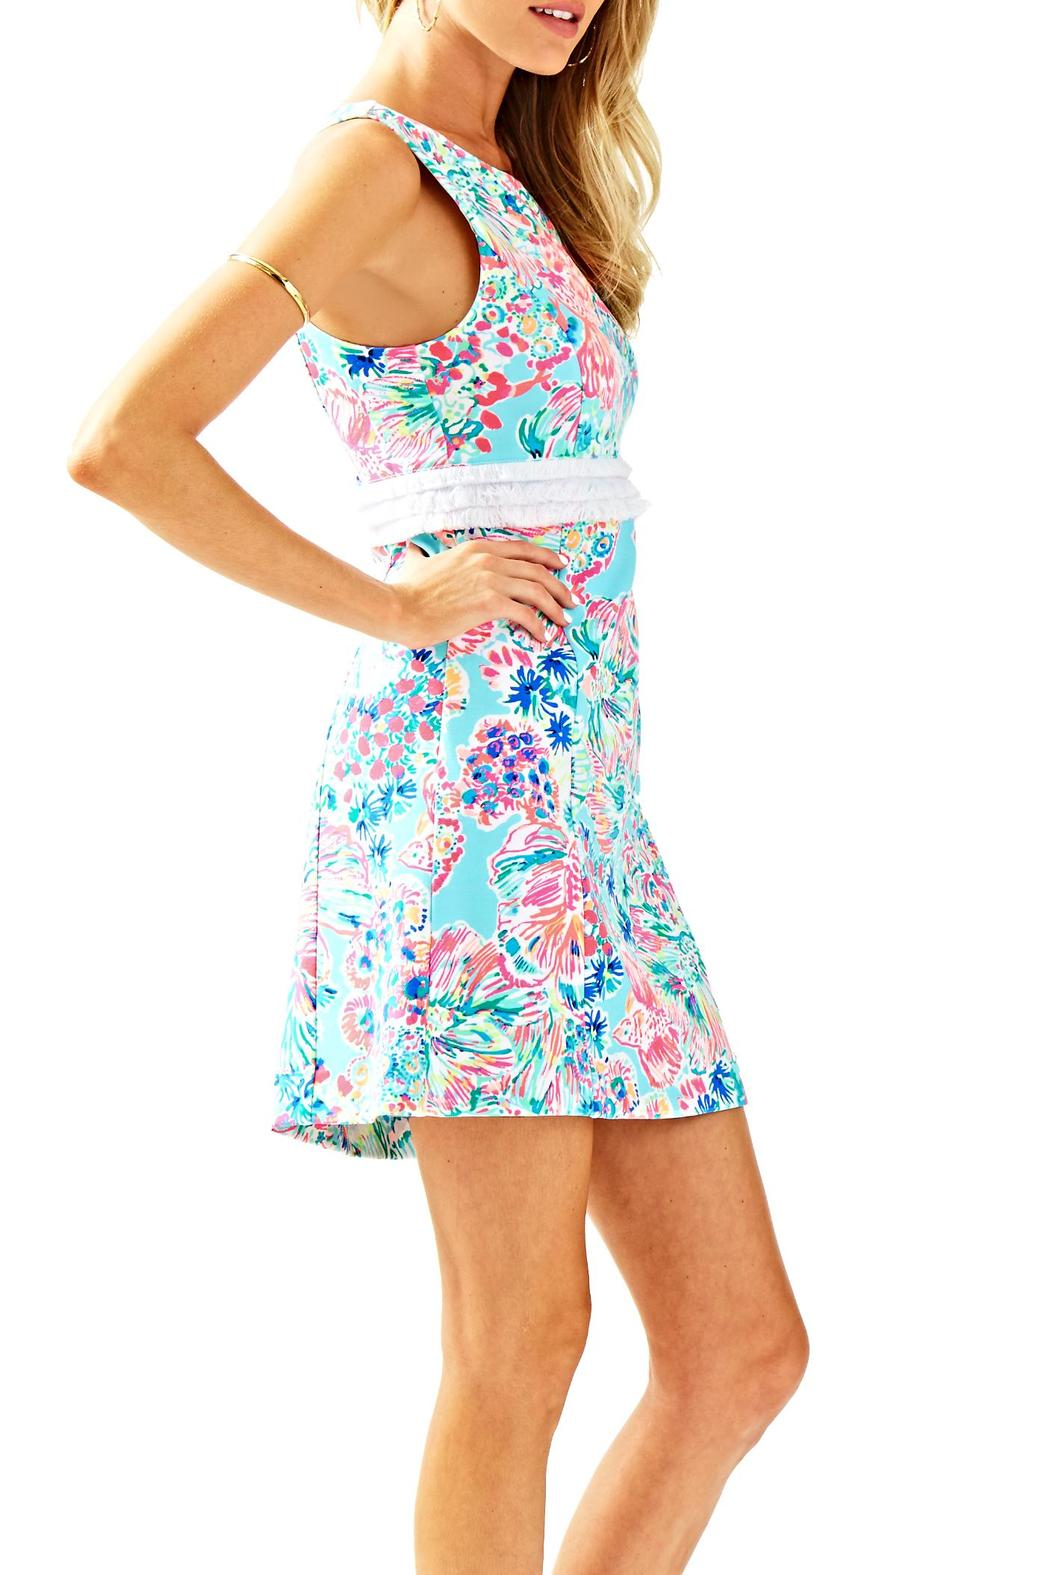 bec63a0fd8f7a0 Lilly Pulitzer Arden Shift Dress from Sandestin Golf and Beach ...